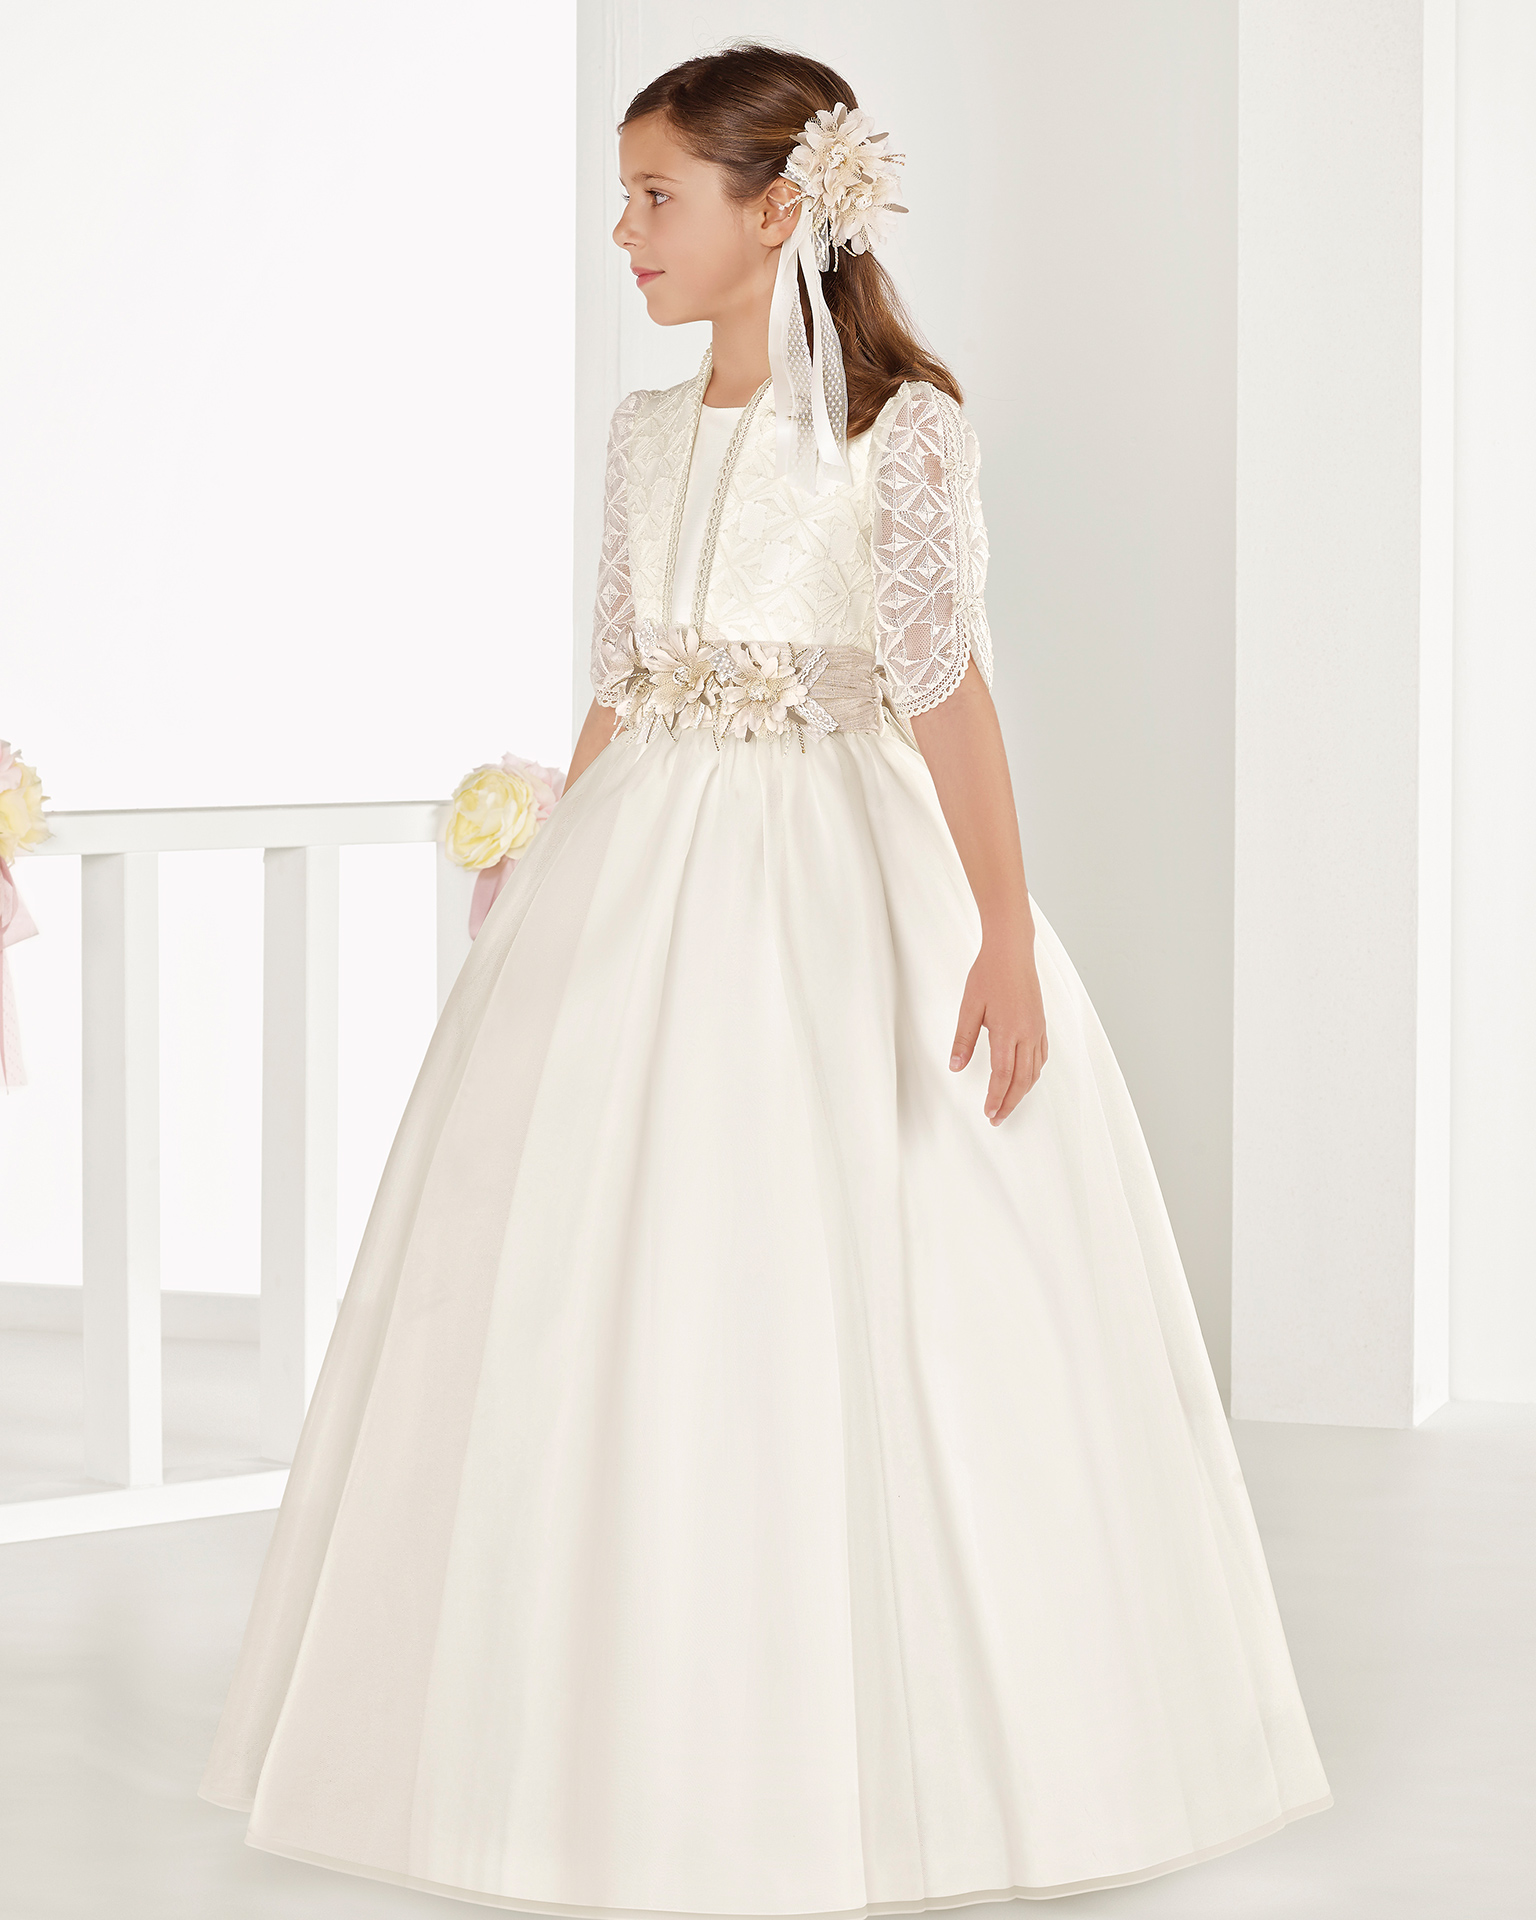 Ballgown-style organza First Communion or bridesmaid's dress with regular waist, in ivory. 2018 AIRE COMUNION Collection.